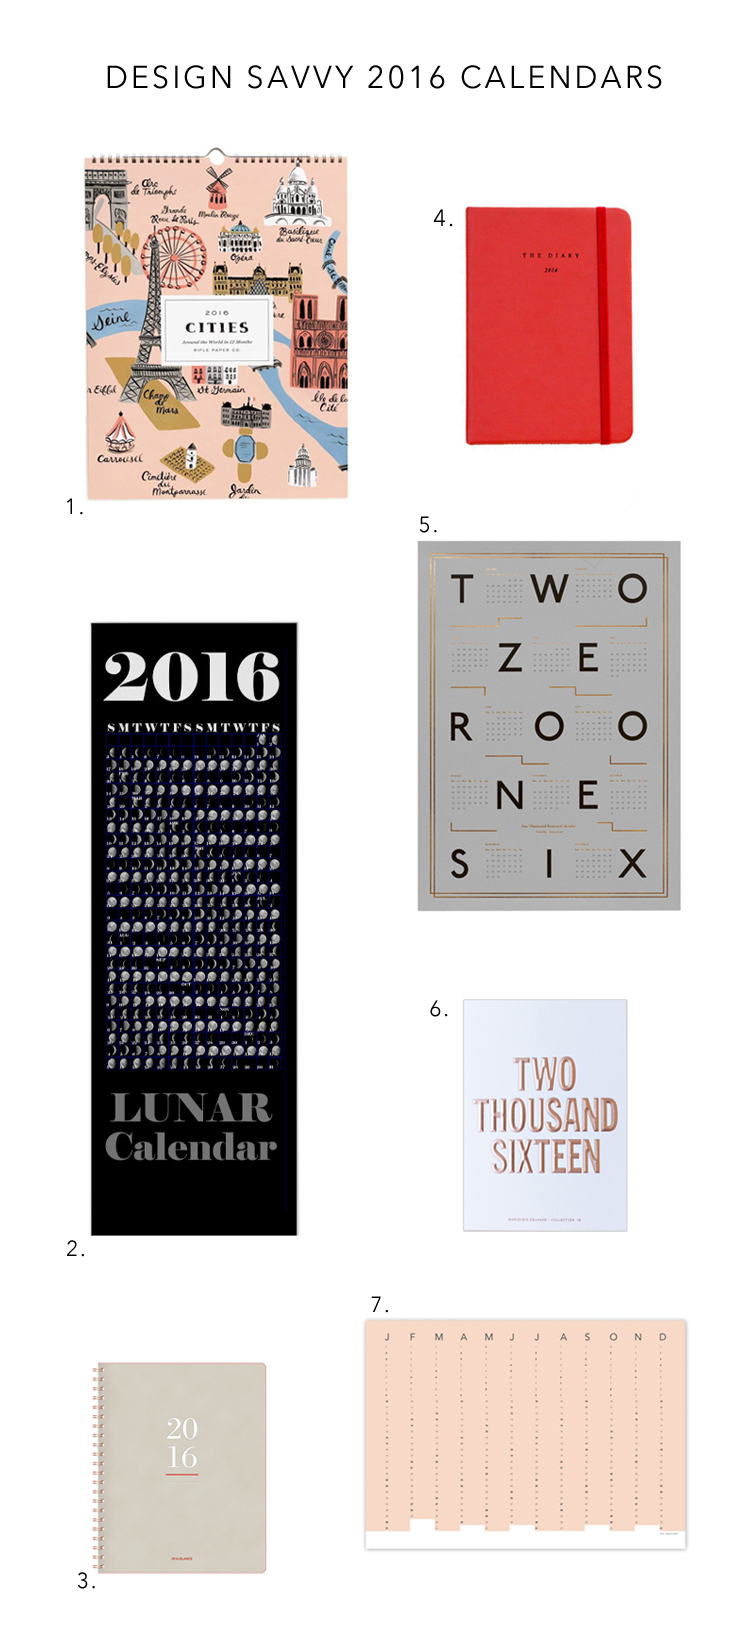 the best modern 2016 calendars for getting organized in style! via Anne Sage